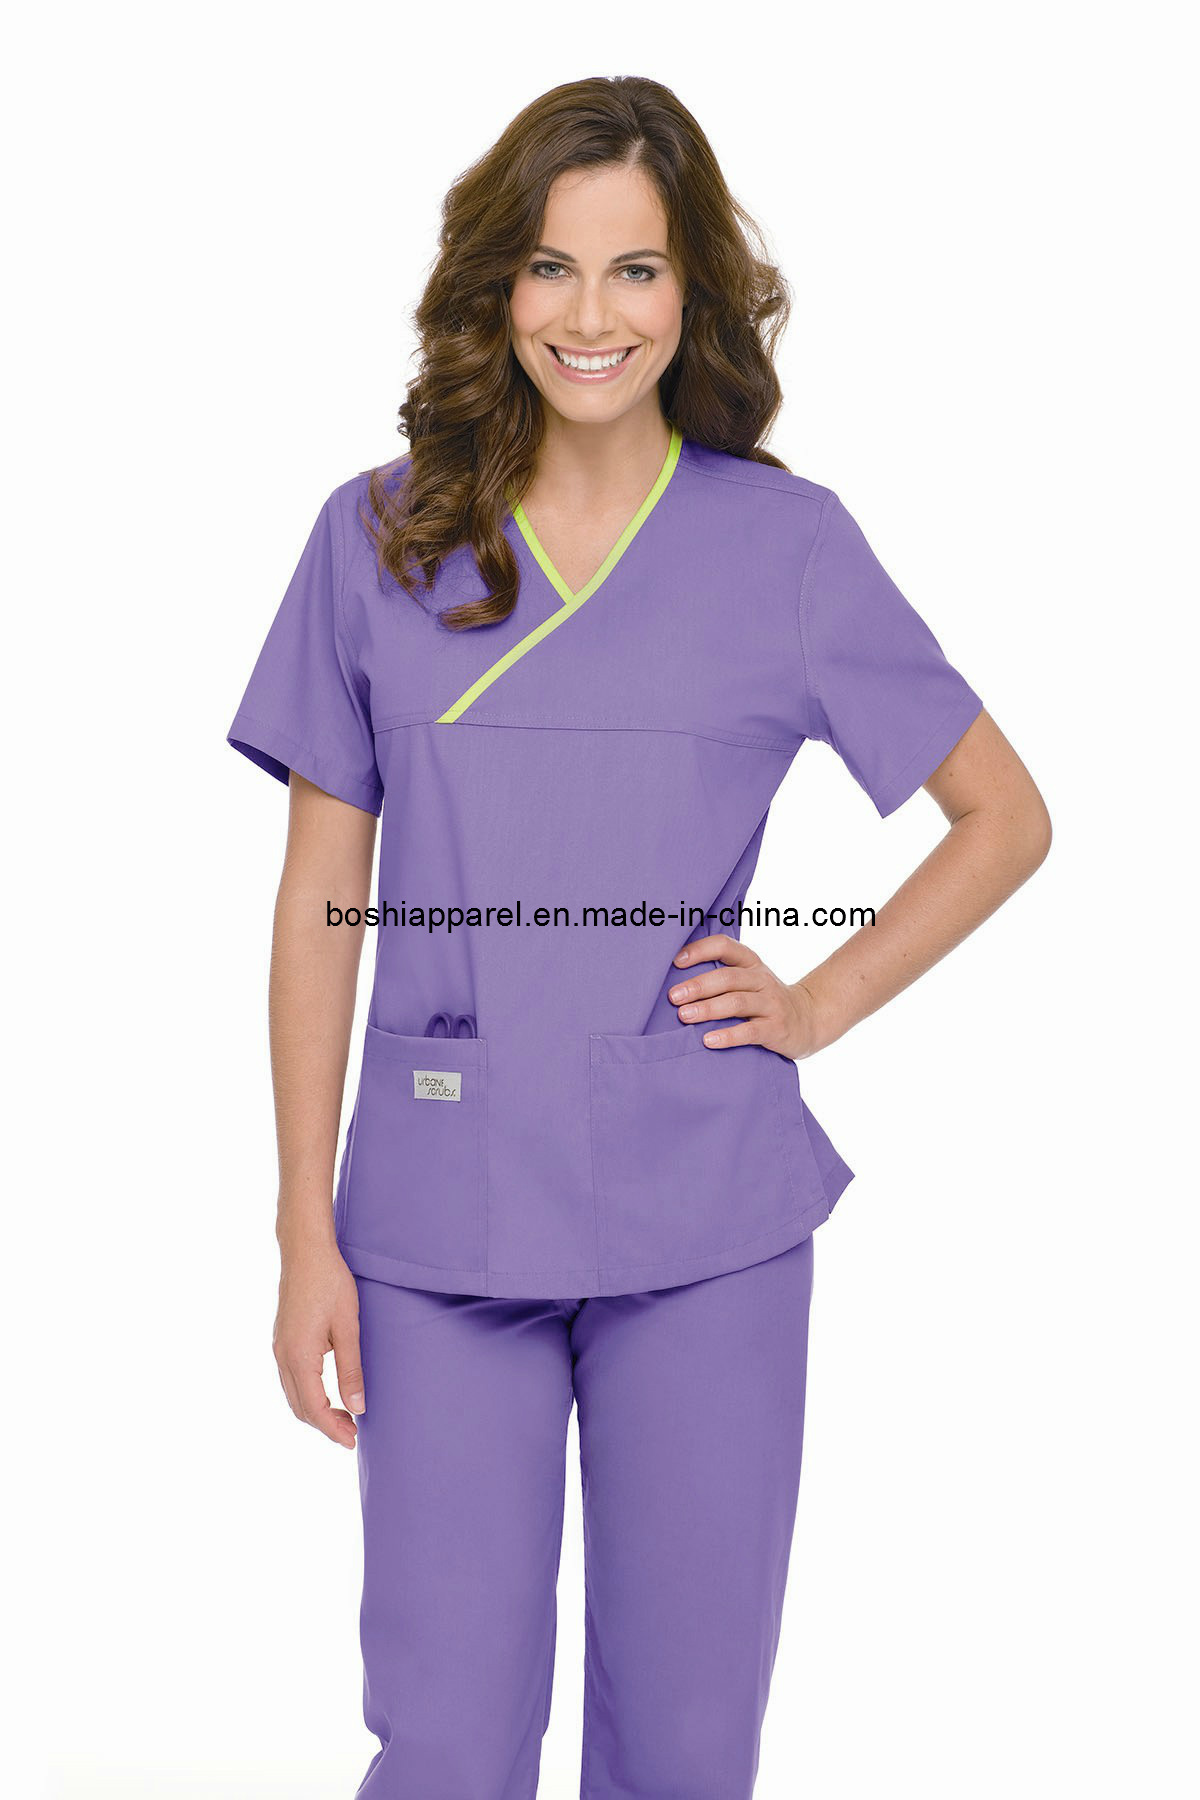 China ladies scrub uniforms hospital workwear la bs31 photos